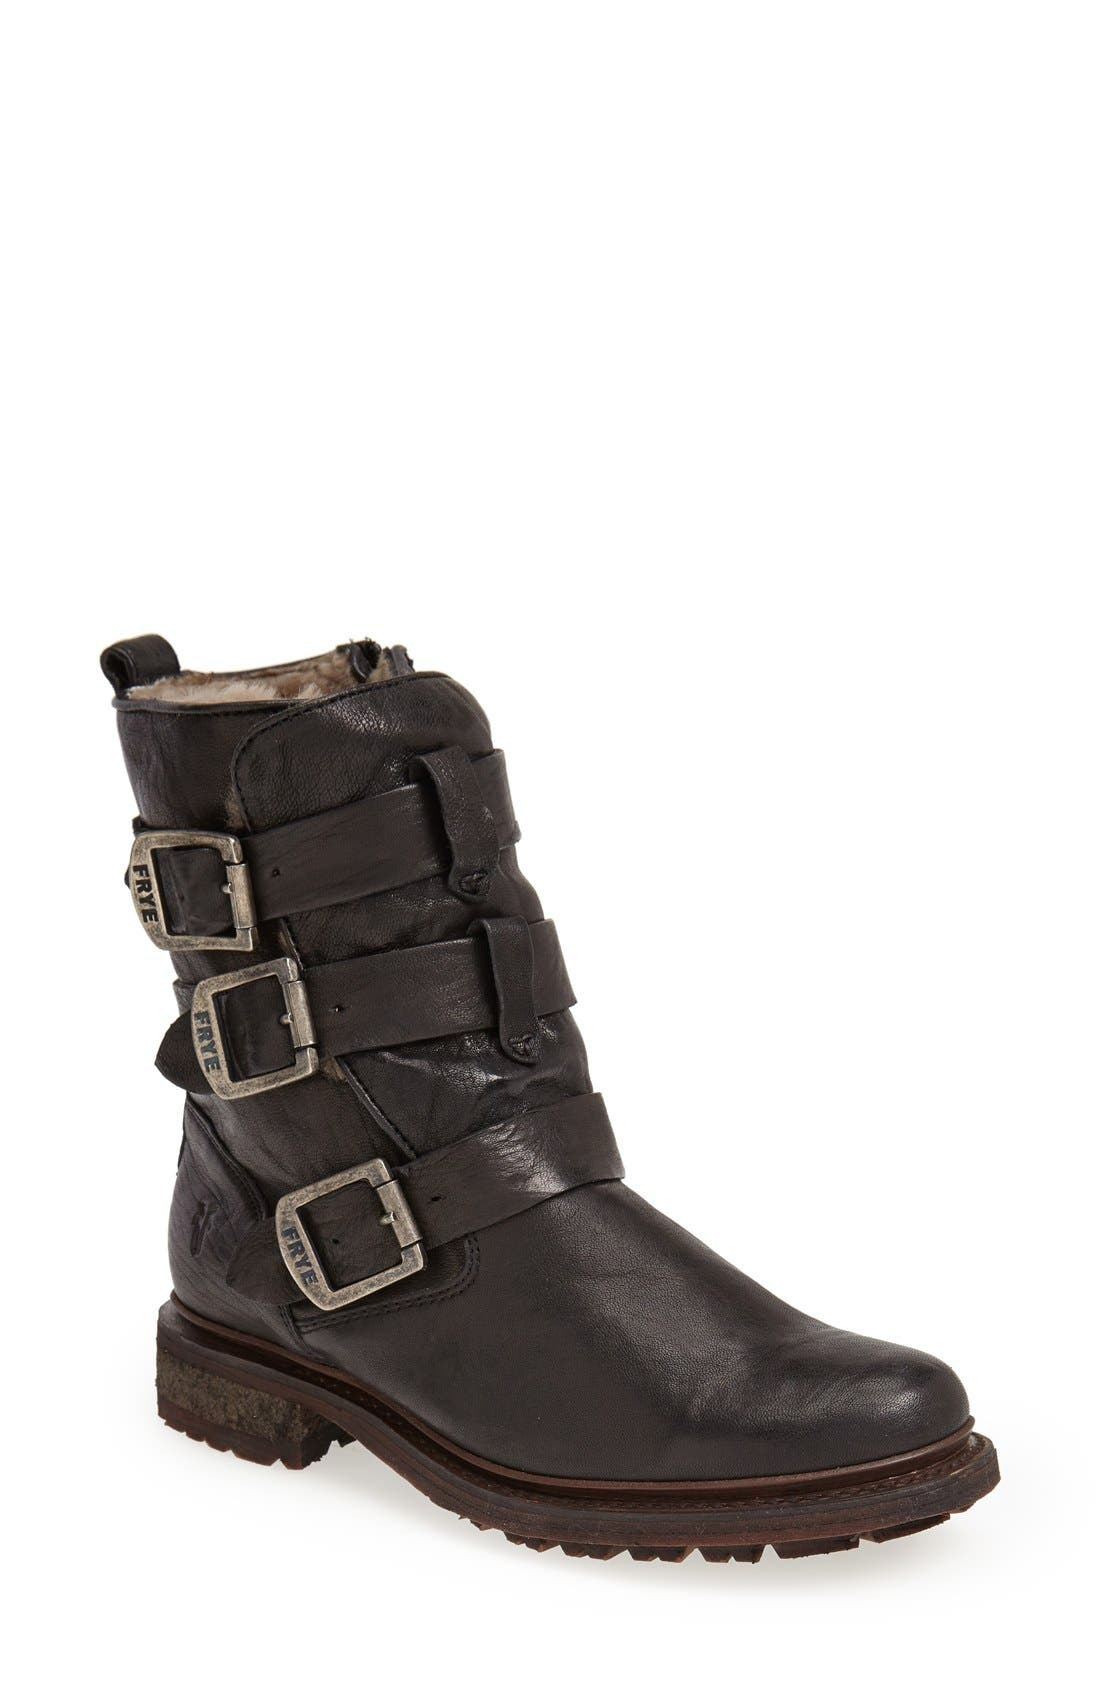 'Valerie' Shearling Lined Strappy Boot, Main, color, 001